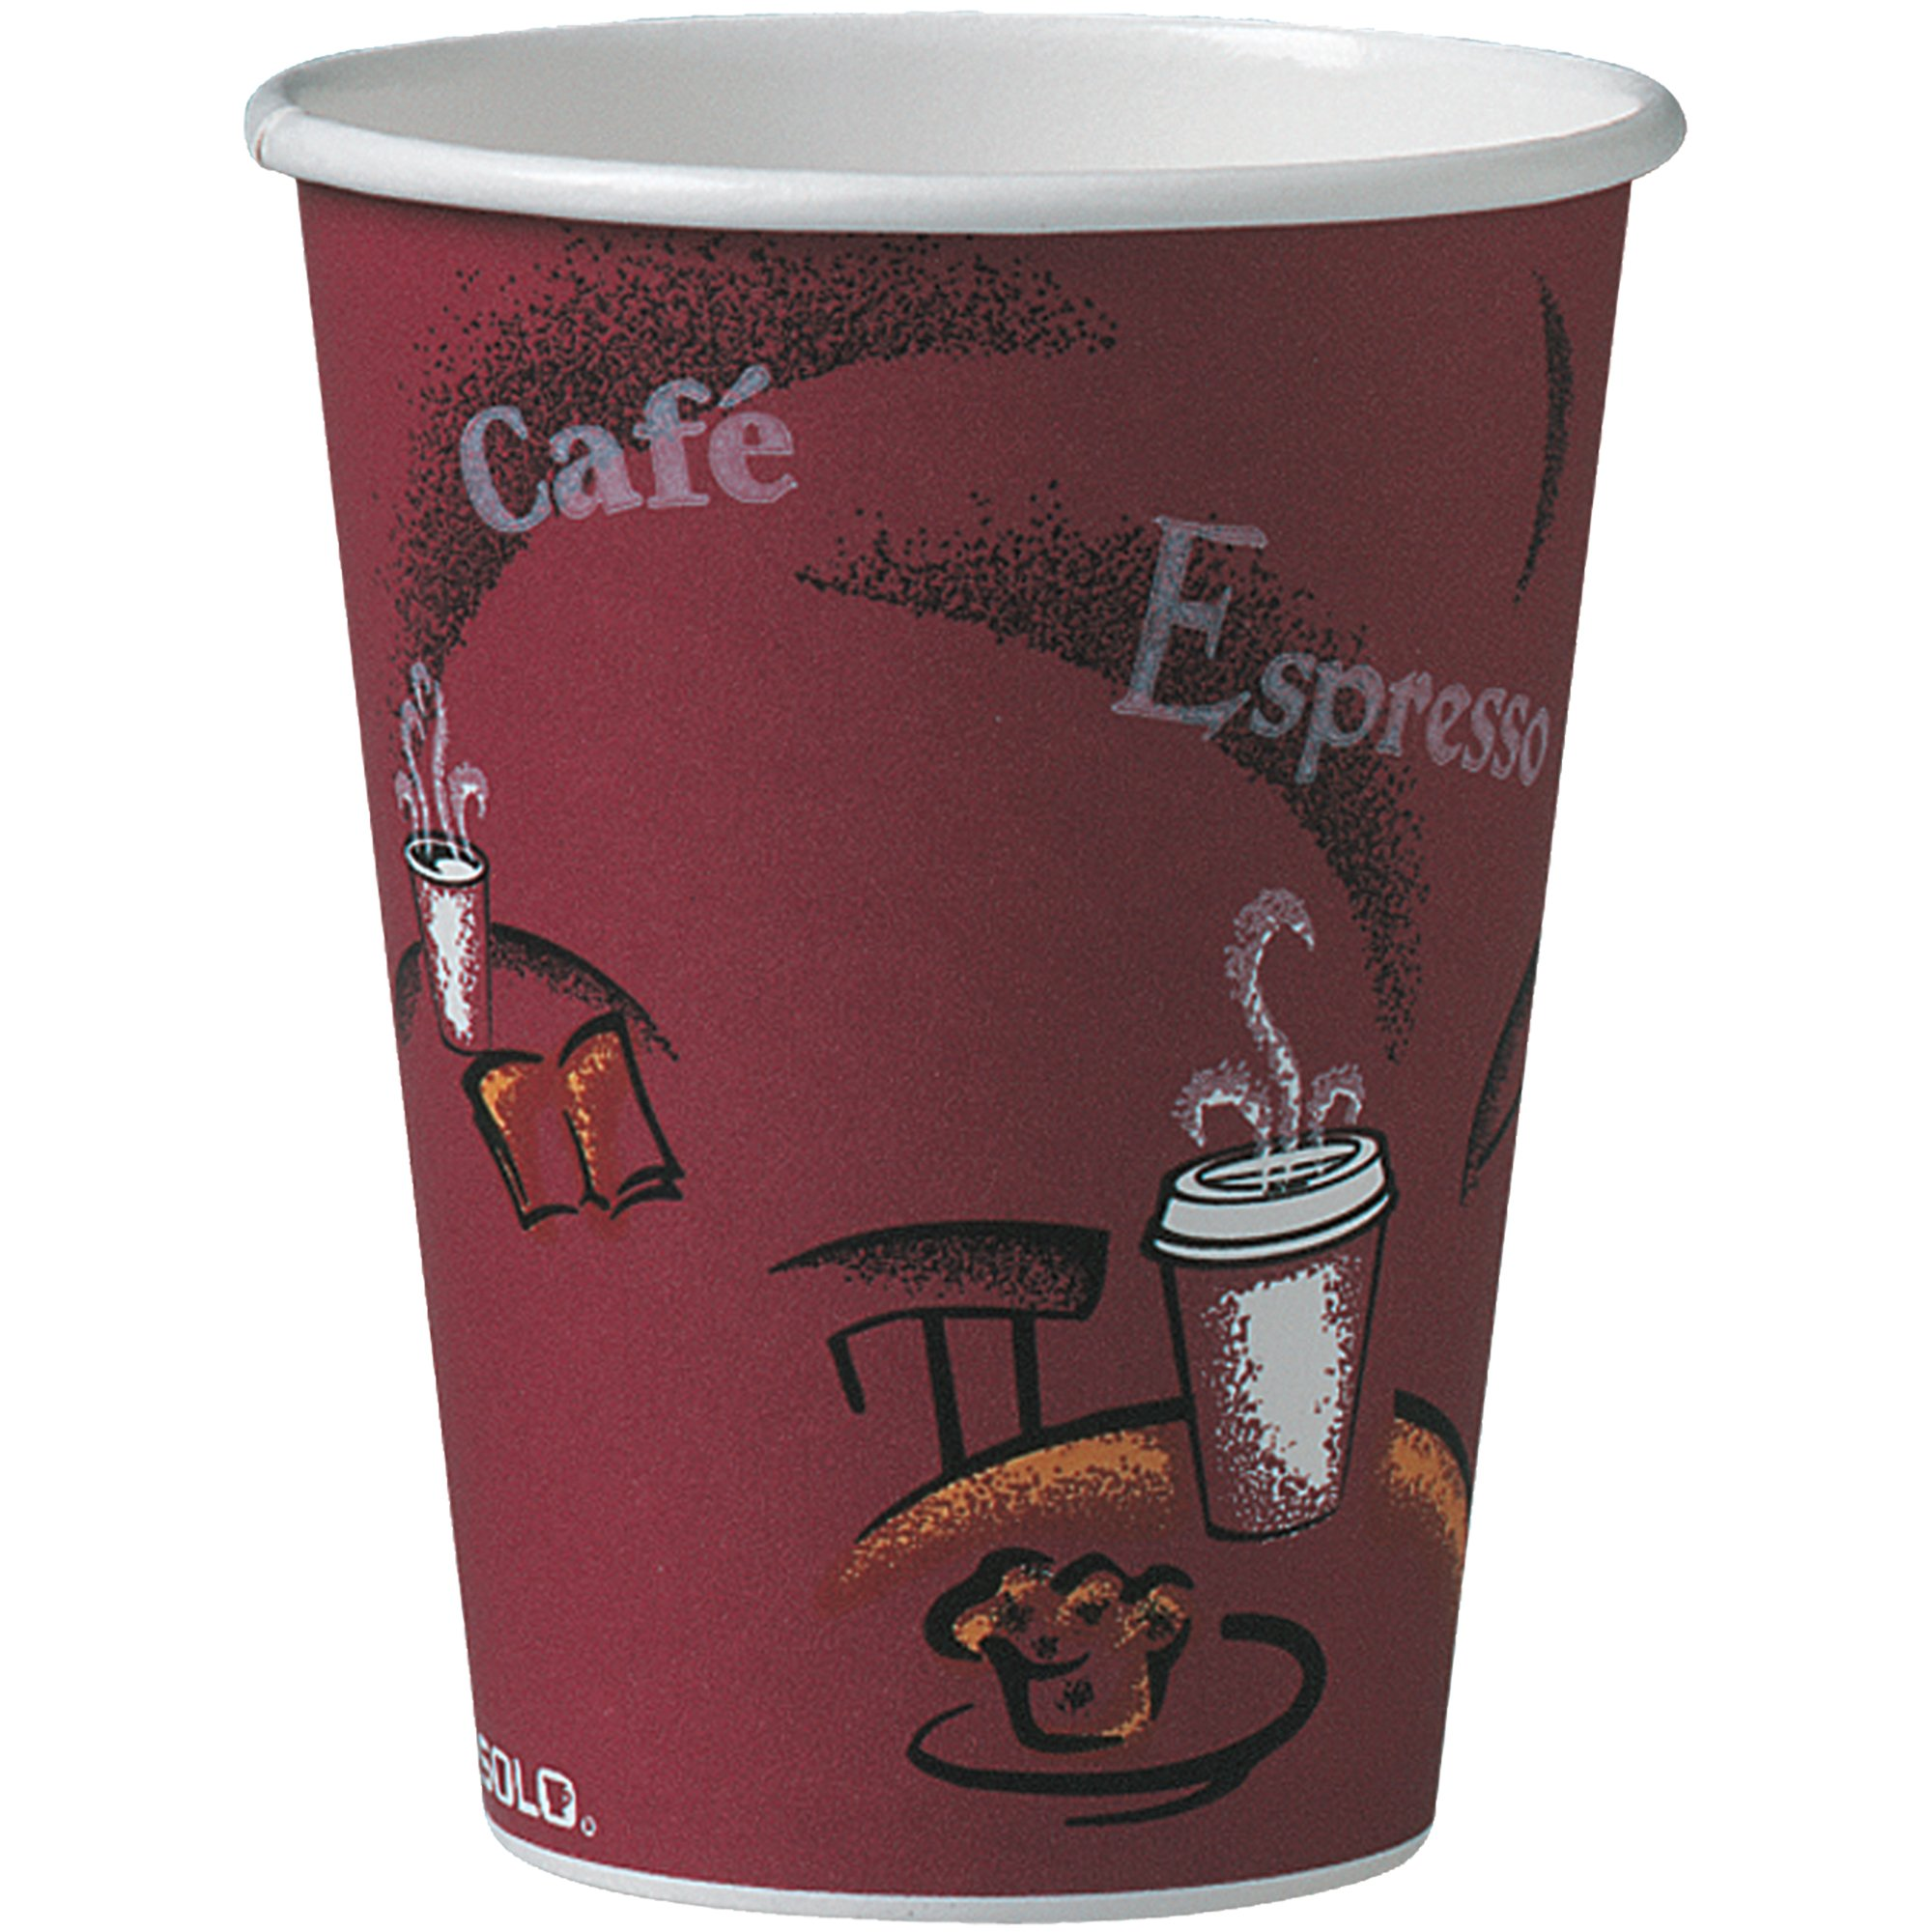 Solo 412SIN-0041 12 oz Bistro SSP Paper Hot Cup (Case of 1000) by Solo Foodservice (Image #1)